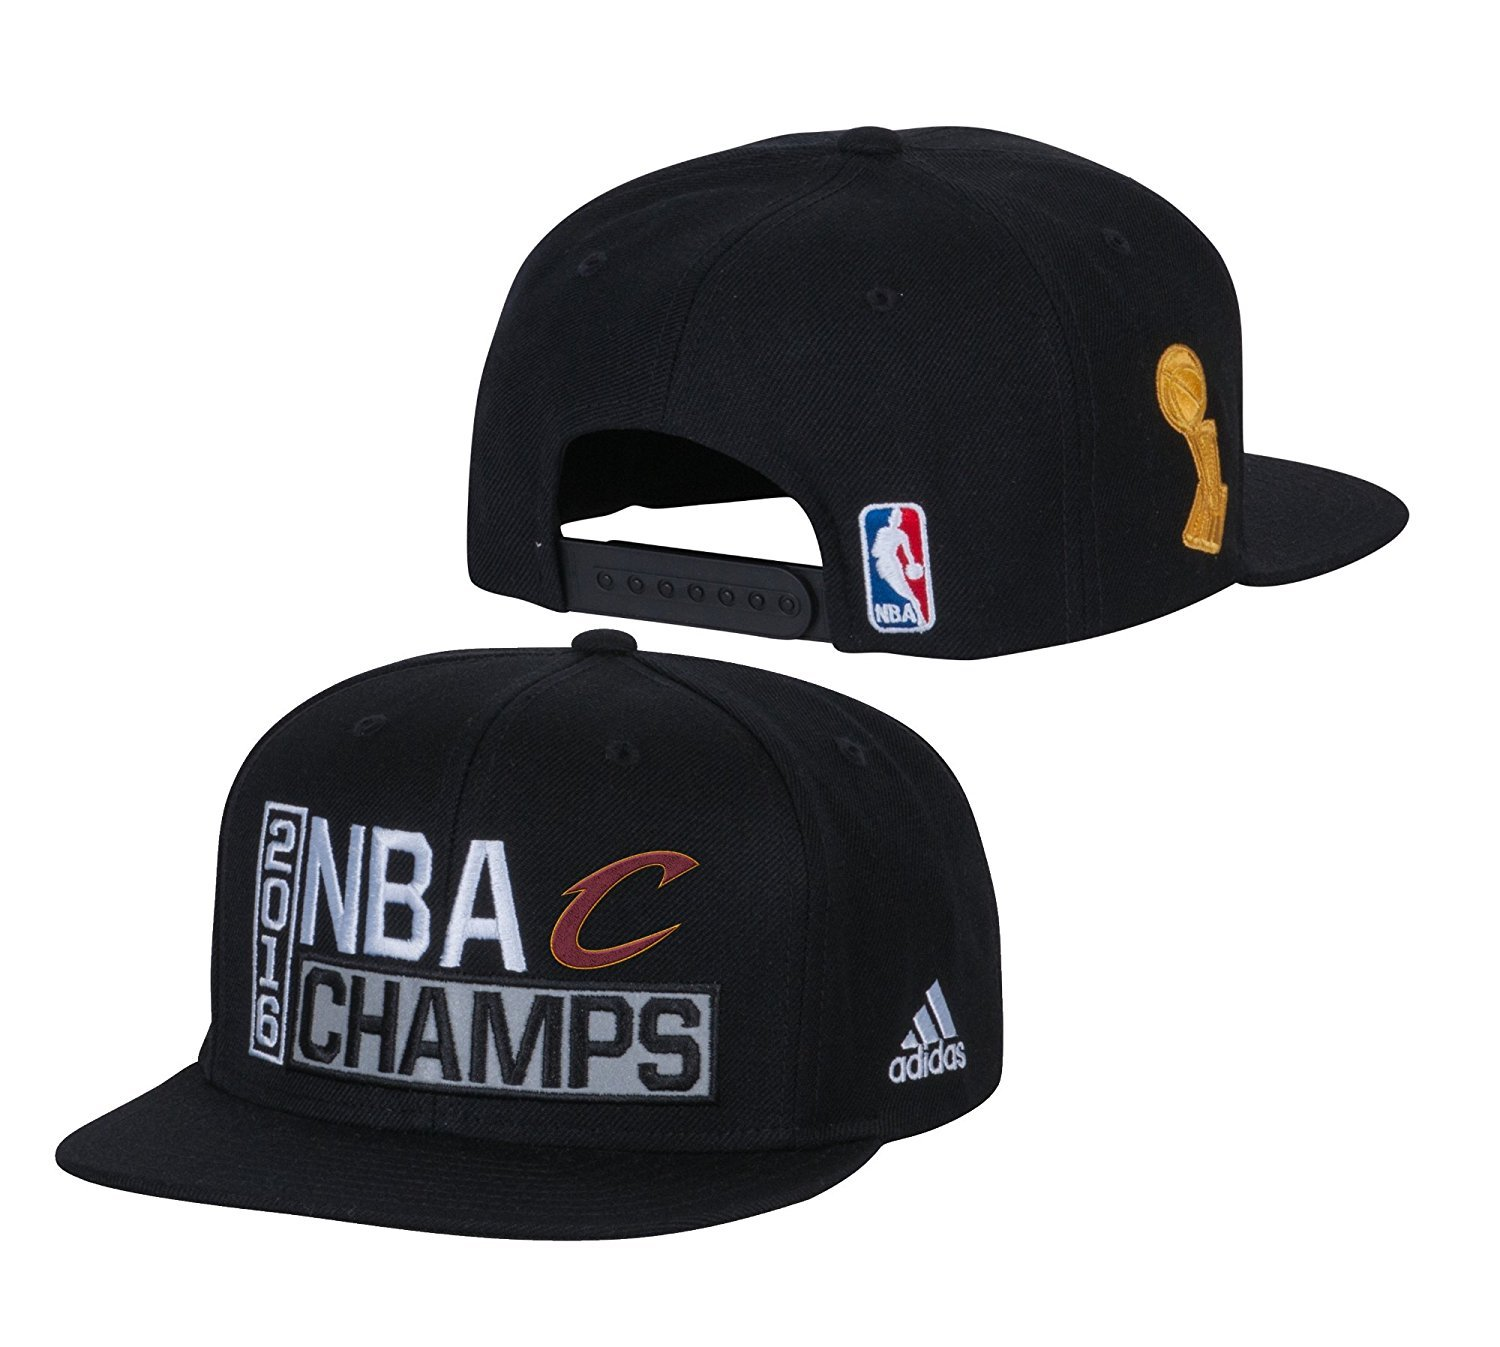 OuterStuff Cleveland Cavaliers Youth NBA 2016 Champs Adjustable Snapback Hat by Outerstuff